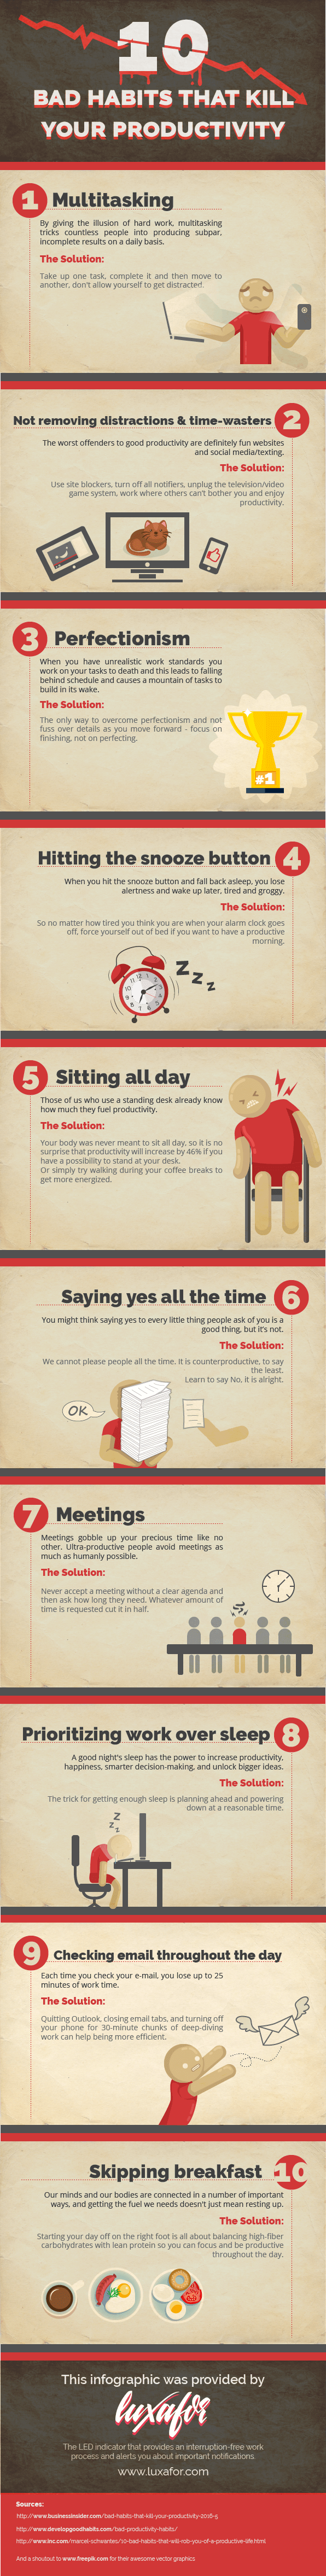 10 Bad Habits That Kill Your Productivity [Infographic]